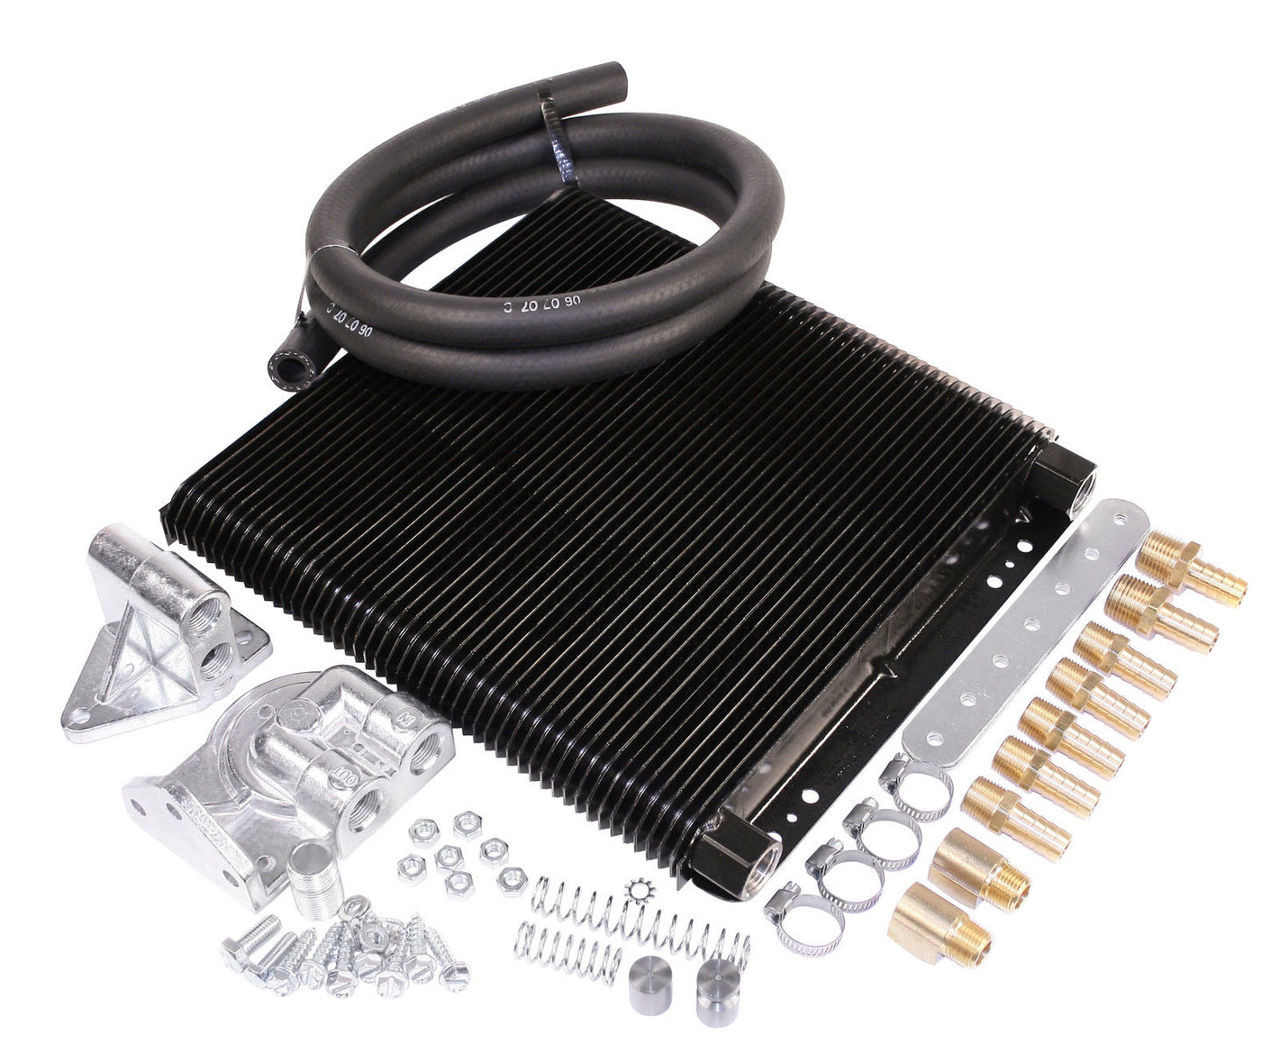 Oil Cooler Kit, 48 Plate, Competition, Fits VW Bug Type-2 Sand Rail Dune Buggy, EMPI 9270